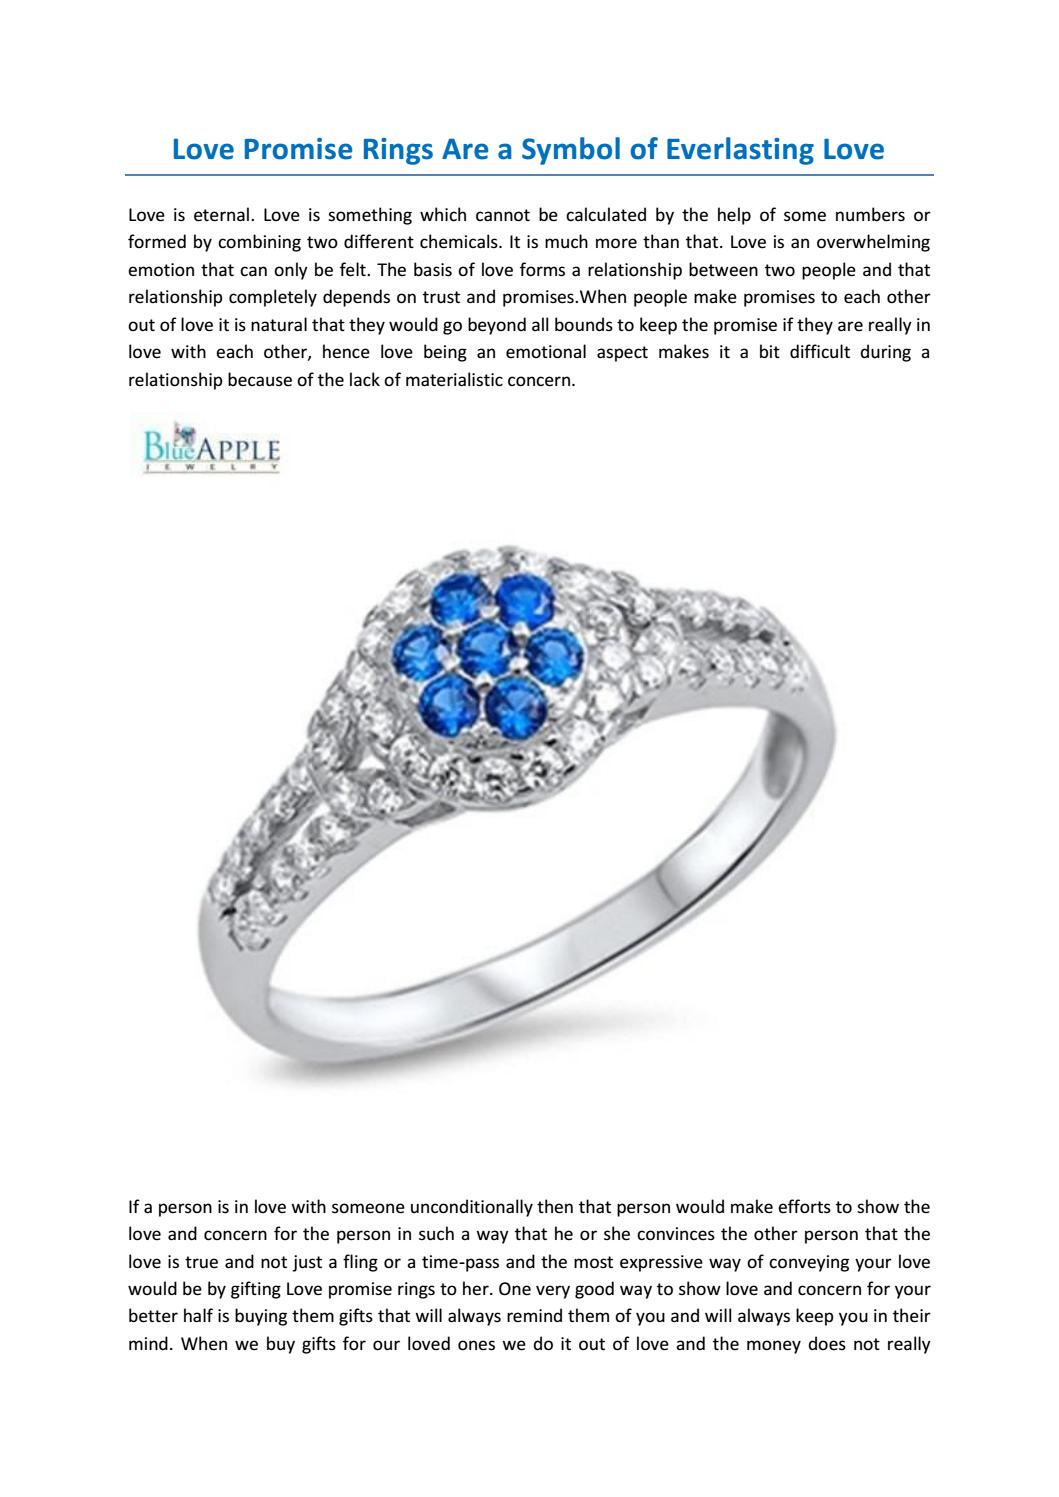 Love Promise Rings Are A Symbol Of Everlasting Love By Blue Apple